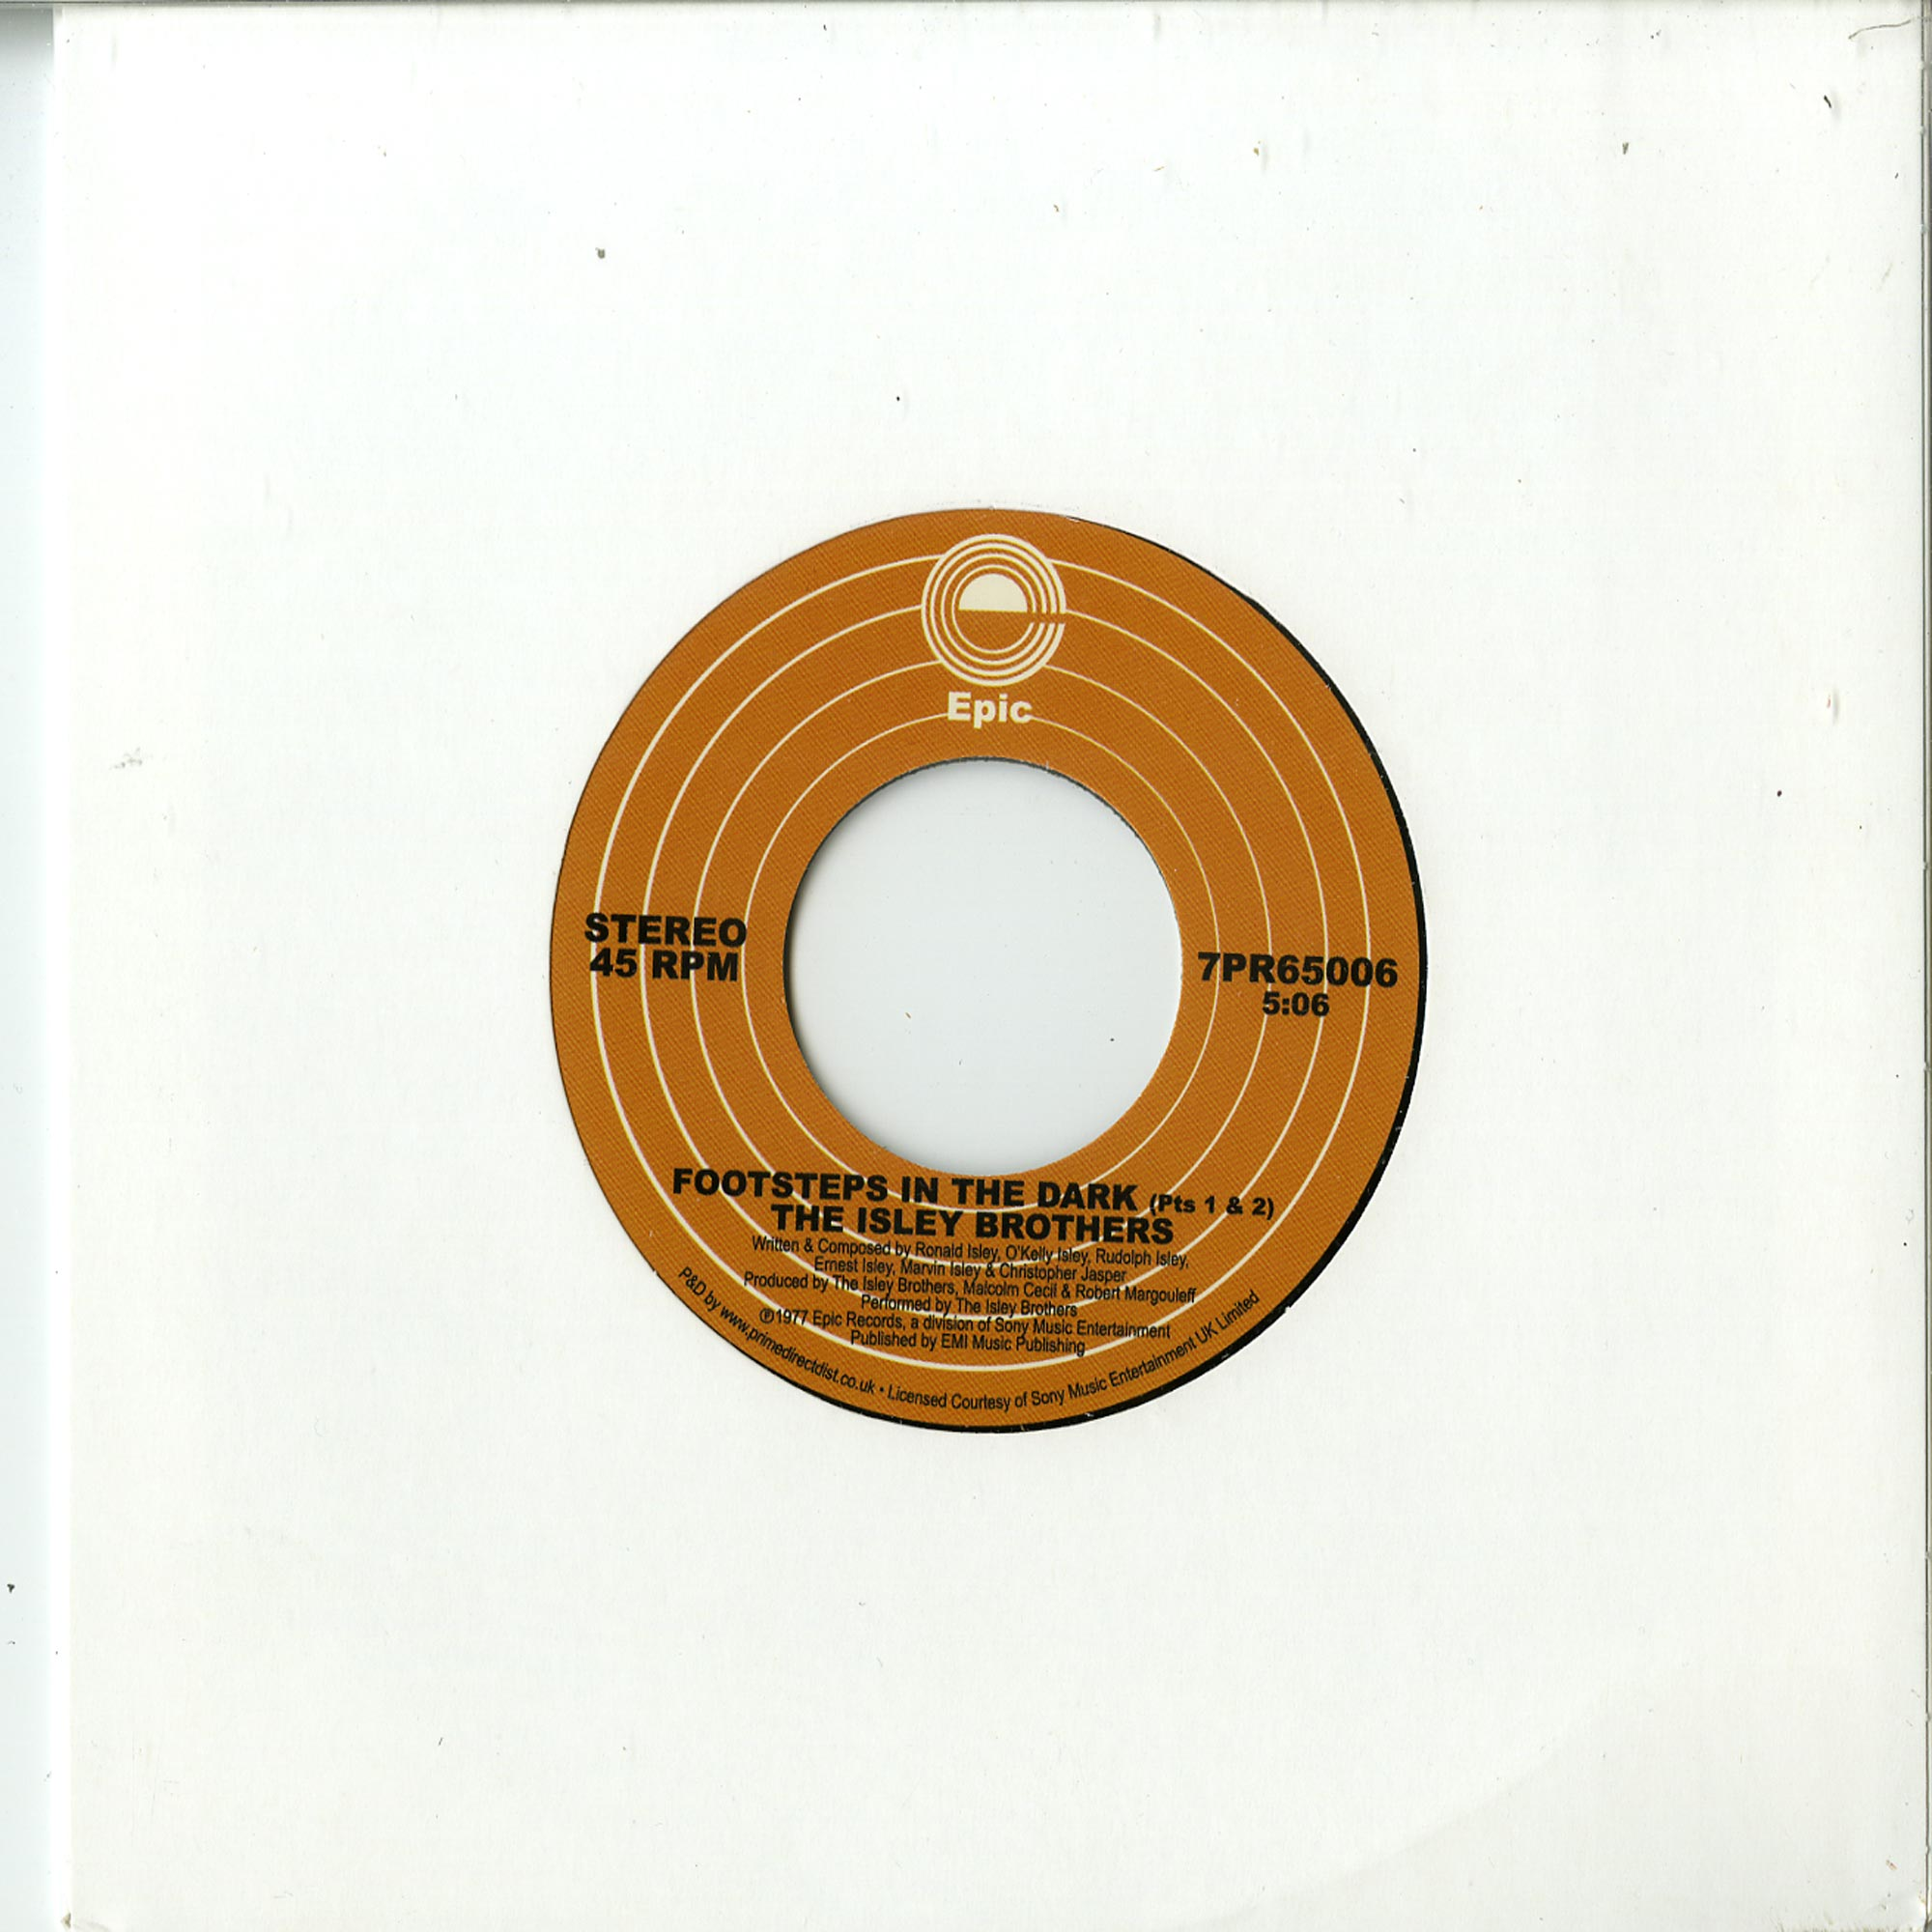 The Isley Brothers - FOOTSTEPS IN THE DARK, PTS. 1 & 2 / BETWEEN THE SHEETS